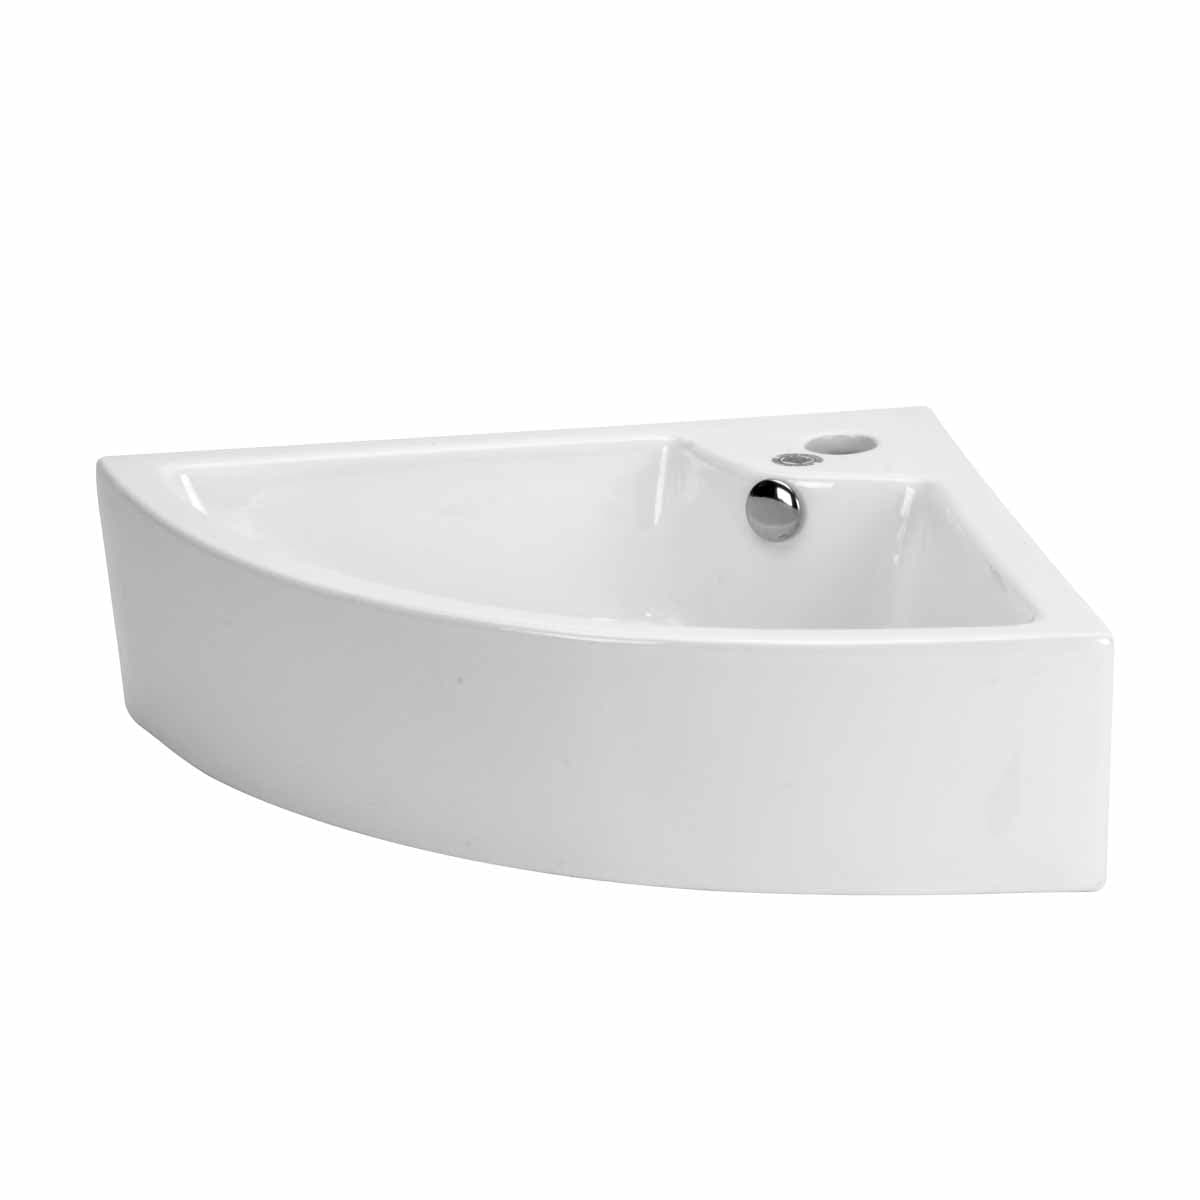 Shop Small Bathroom Corner Sink Above Counter Angled Vessel Faucet